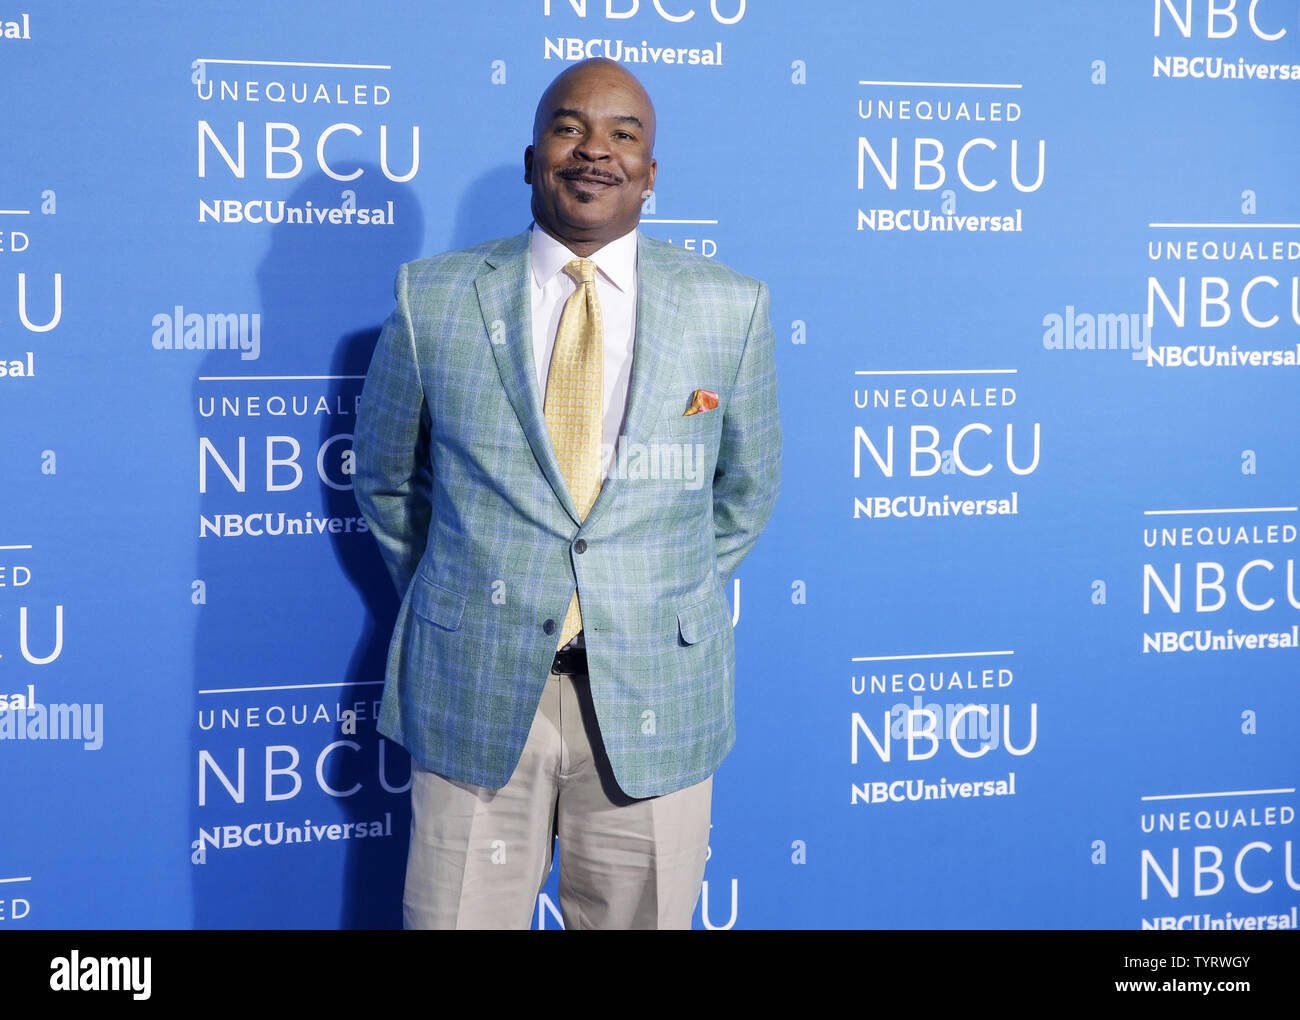 David Alan Grier arrives on the red carpet at the 2017 NBCUniversal Upfront at Radio City Music Hall on May 15, 2017 in New York City.   Photo by John Angelillo/UPI - Stock Image